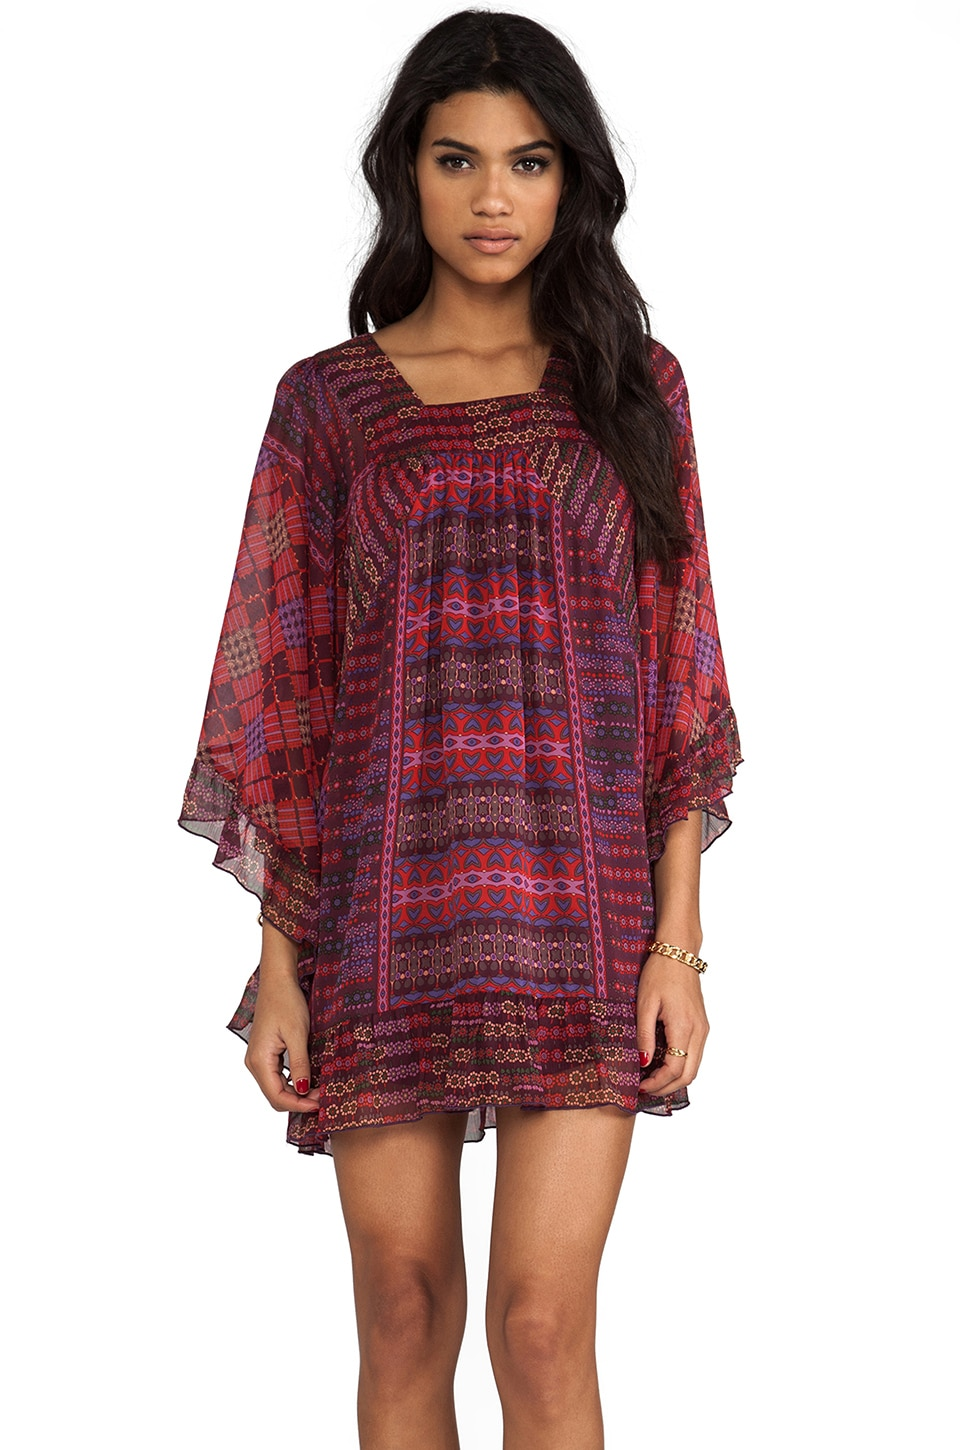 Anna Sui Patchwork Print Dress in Oxblood